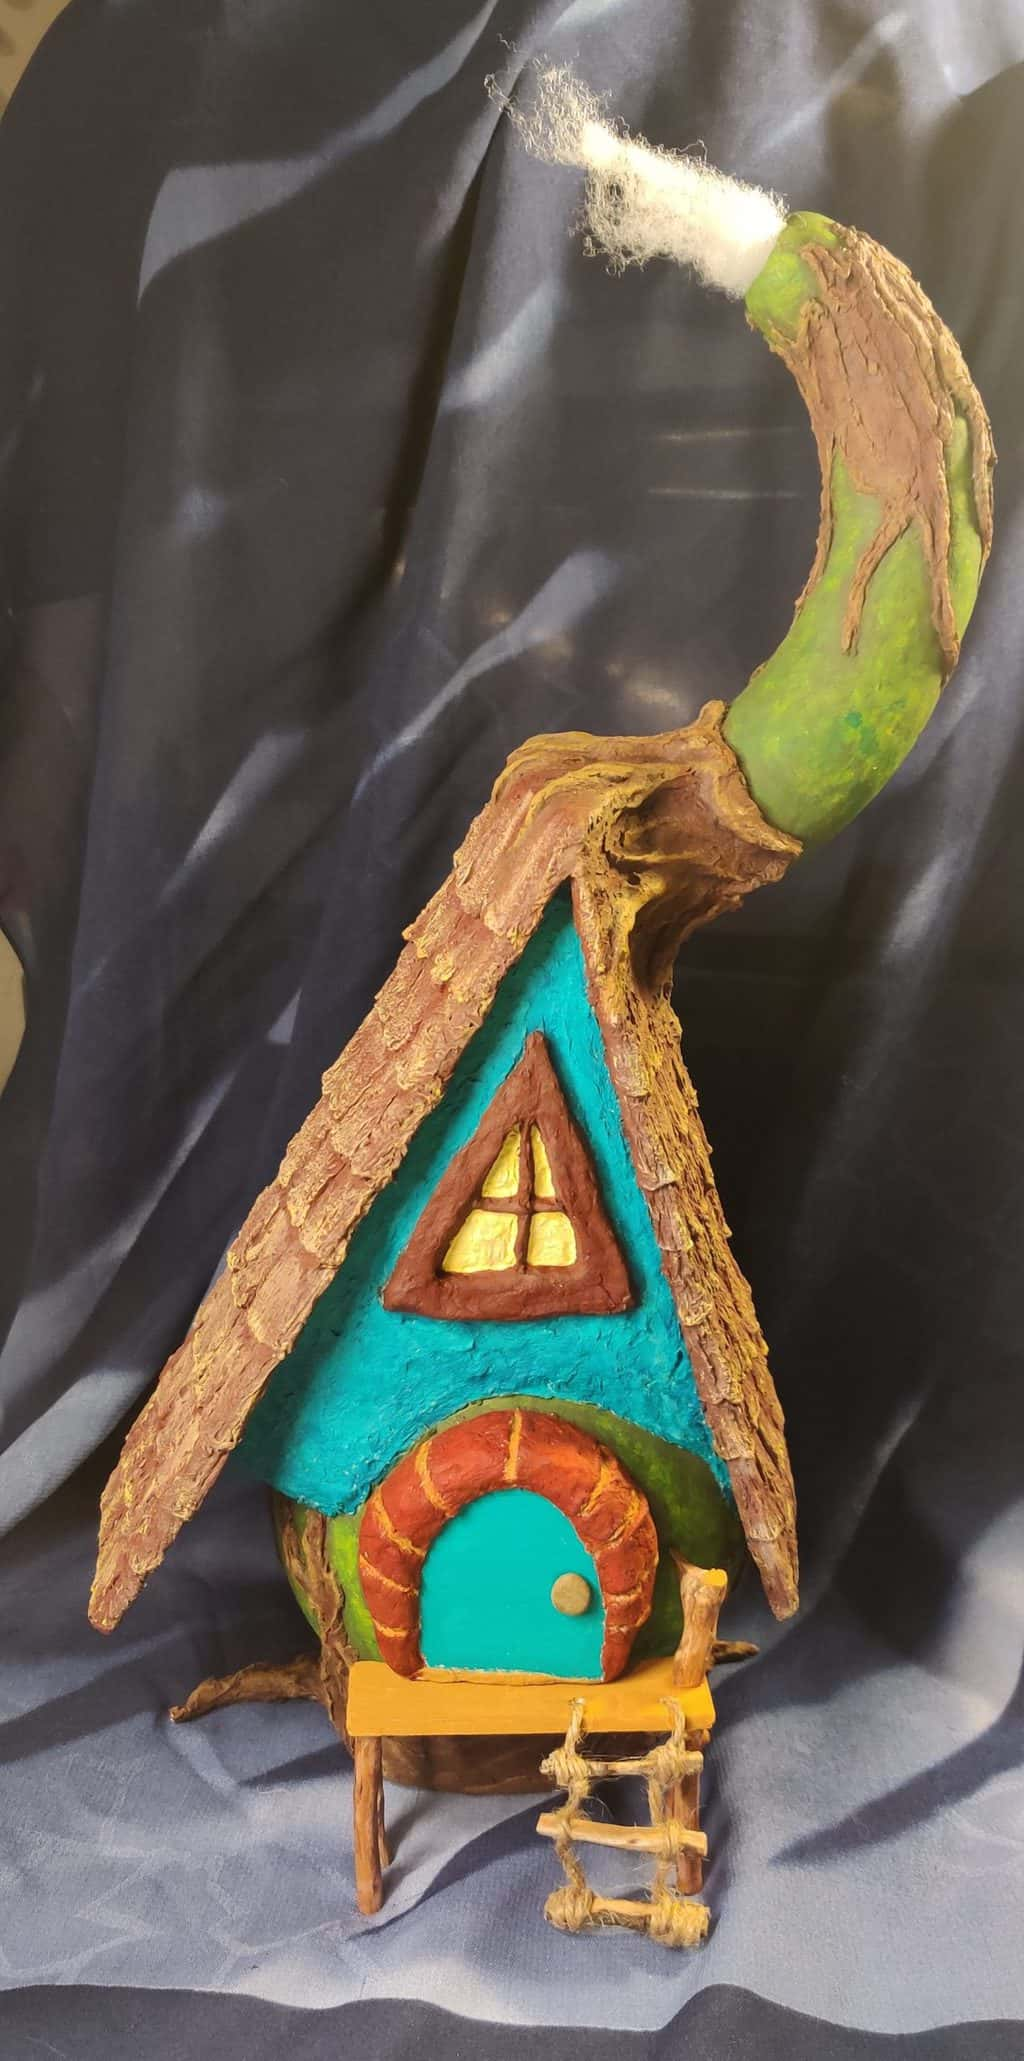 Fairy House made with gourd - front view